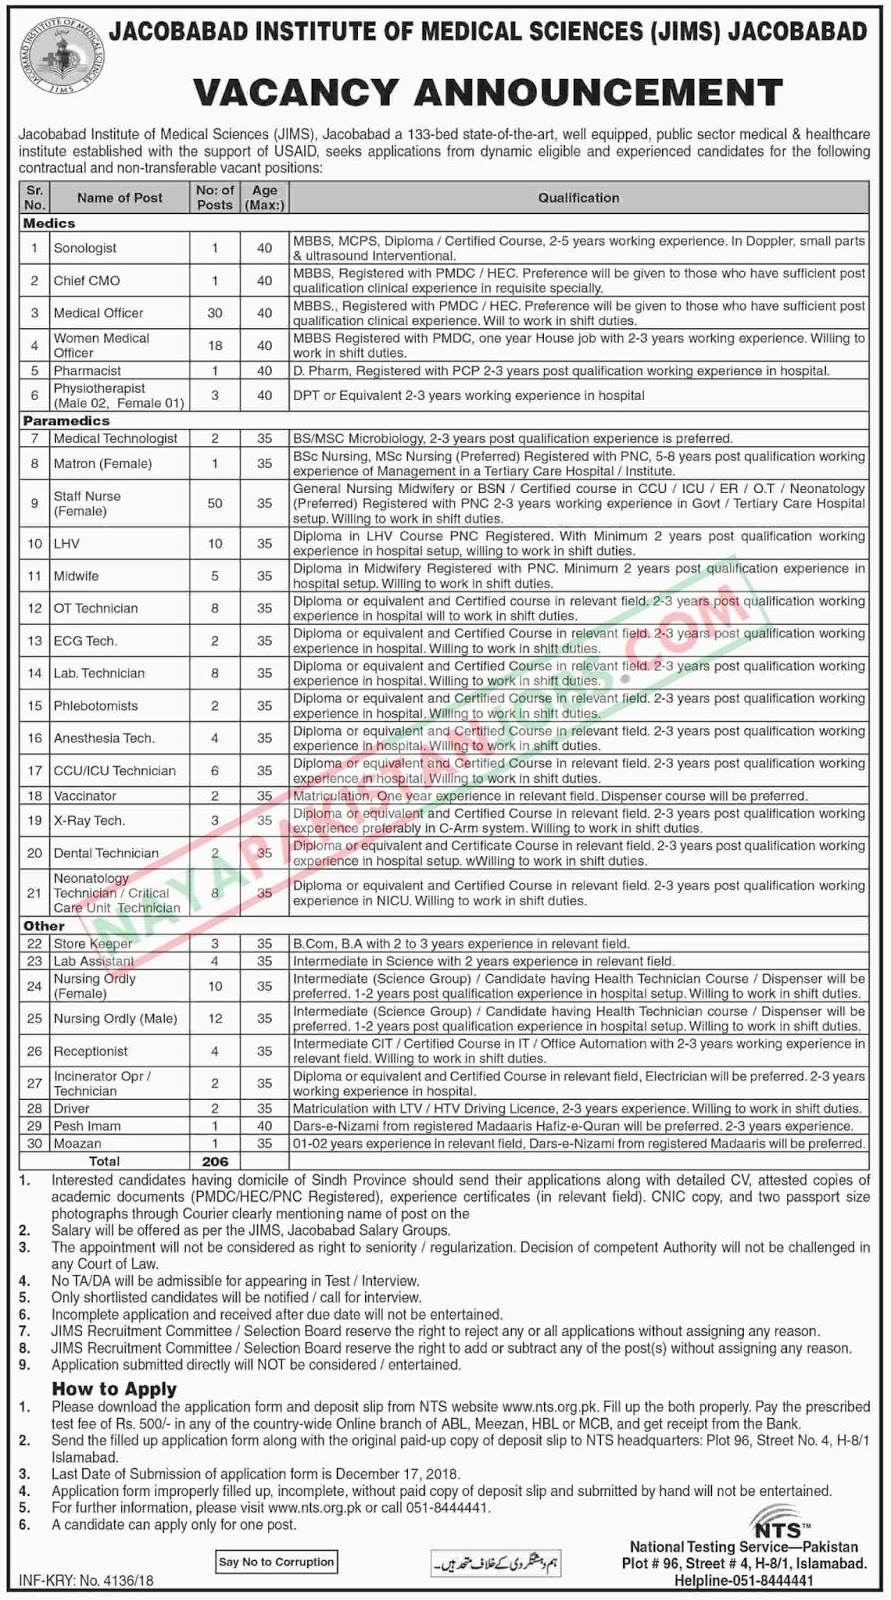 Latest Vacancies Announced in Jacobabad Institute Of Medical Sciences 3 December 2018 - Naya Pakistan